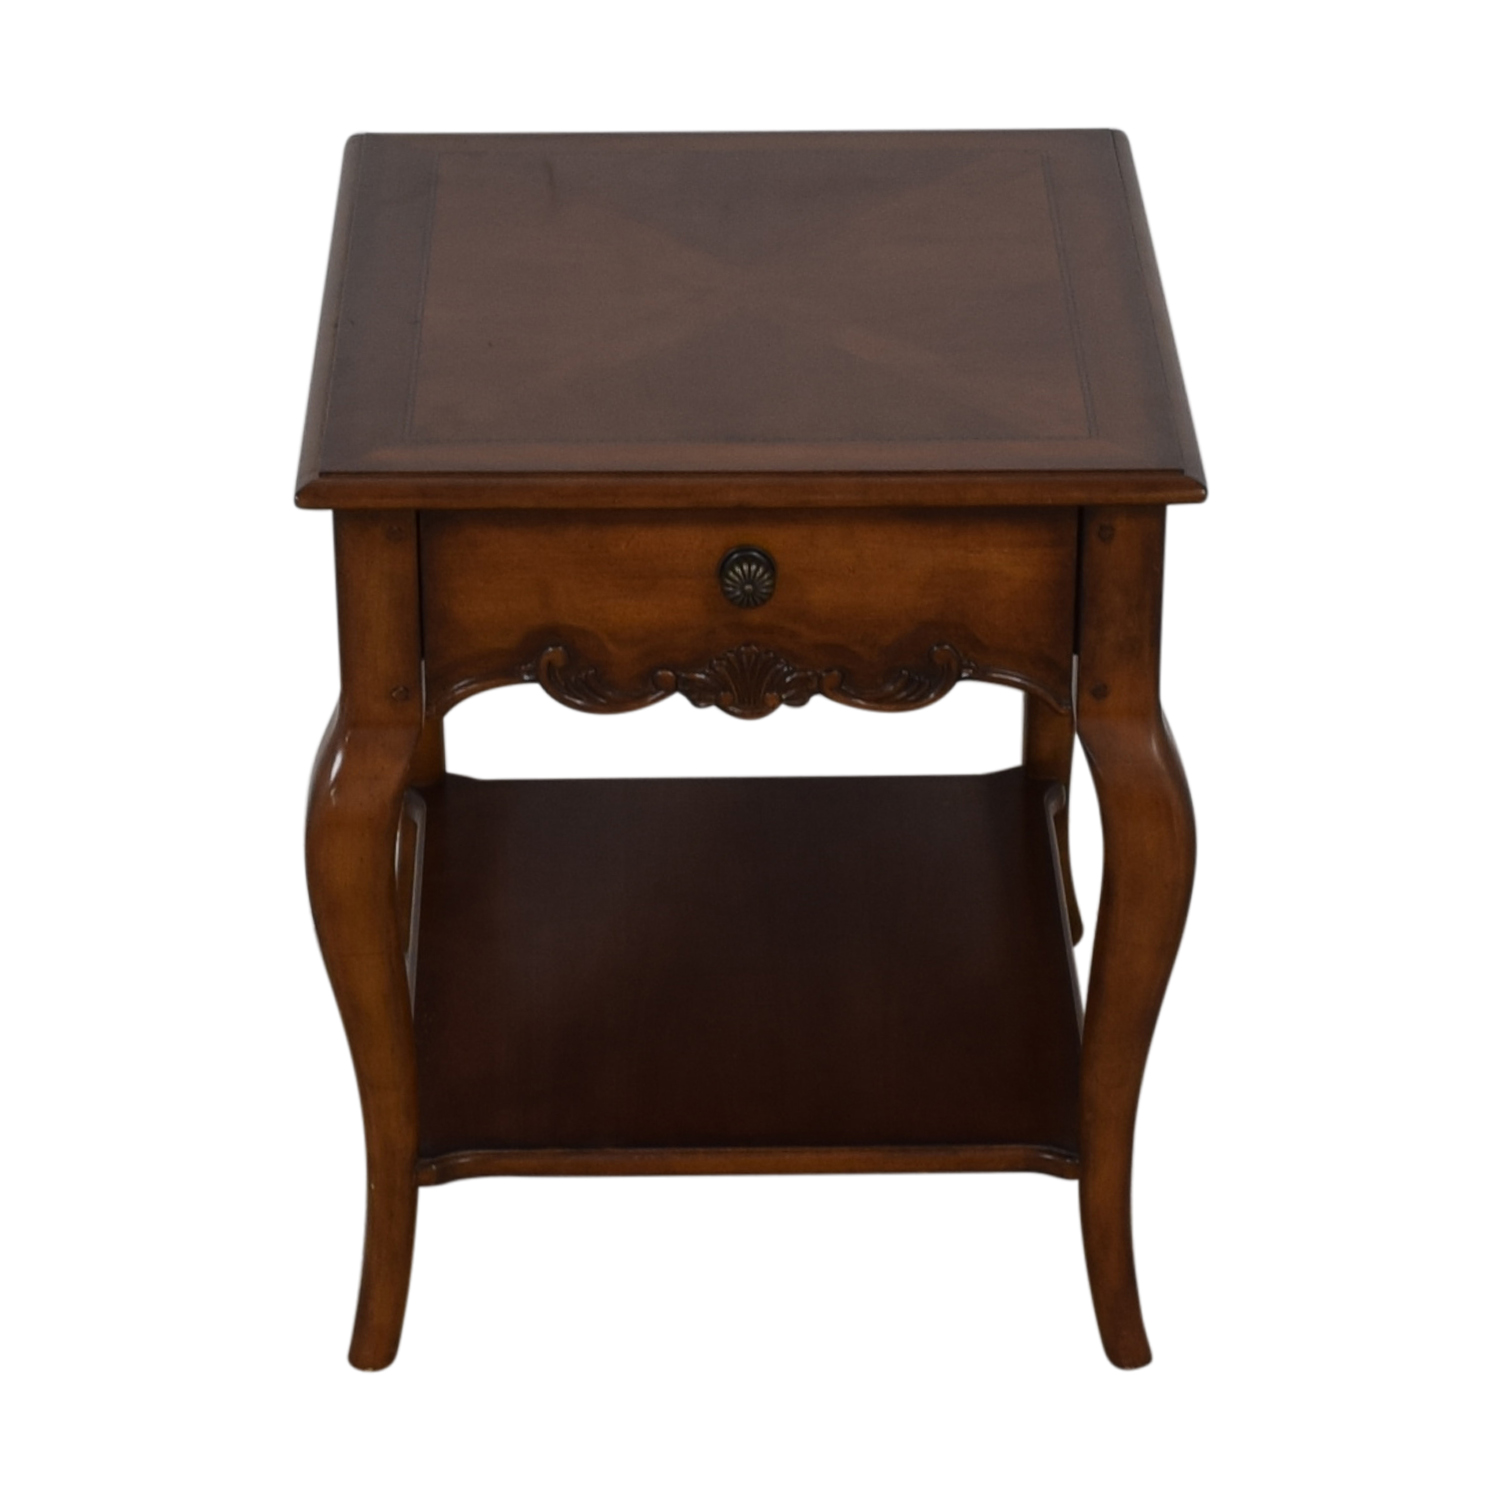 Drexel Heritage Furniture Drexel Heritage Furniture End Table second hand